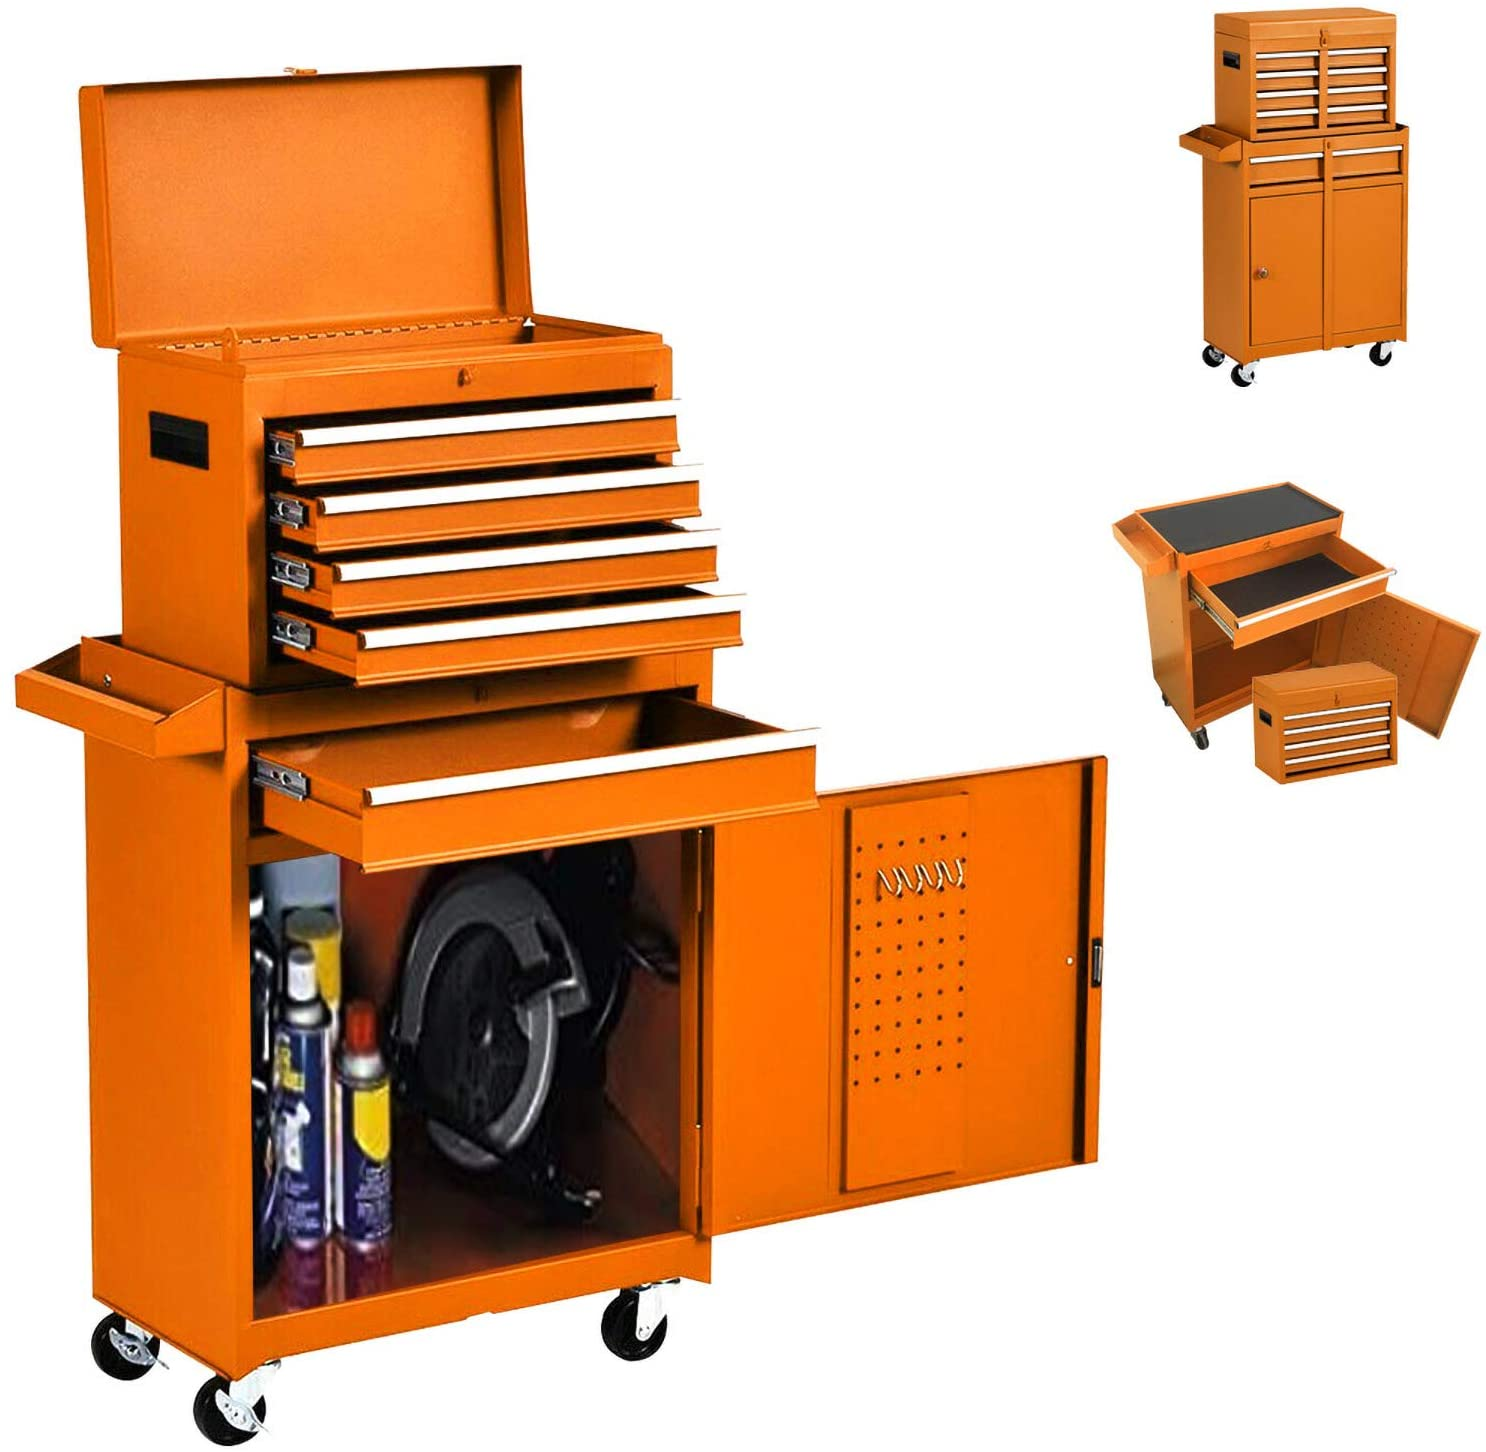 Large Tool Chest,Rolling Tool Chest, Tool Chest with Wheels, Large Capacity Tool Cabinet with 5 Drawers, Tool Box Locks with Keys and Garage Storage (Orange)